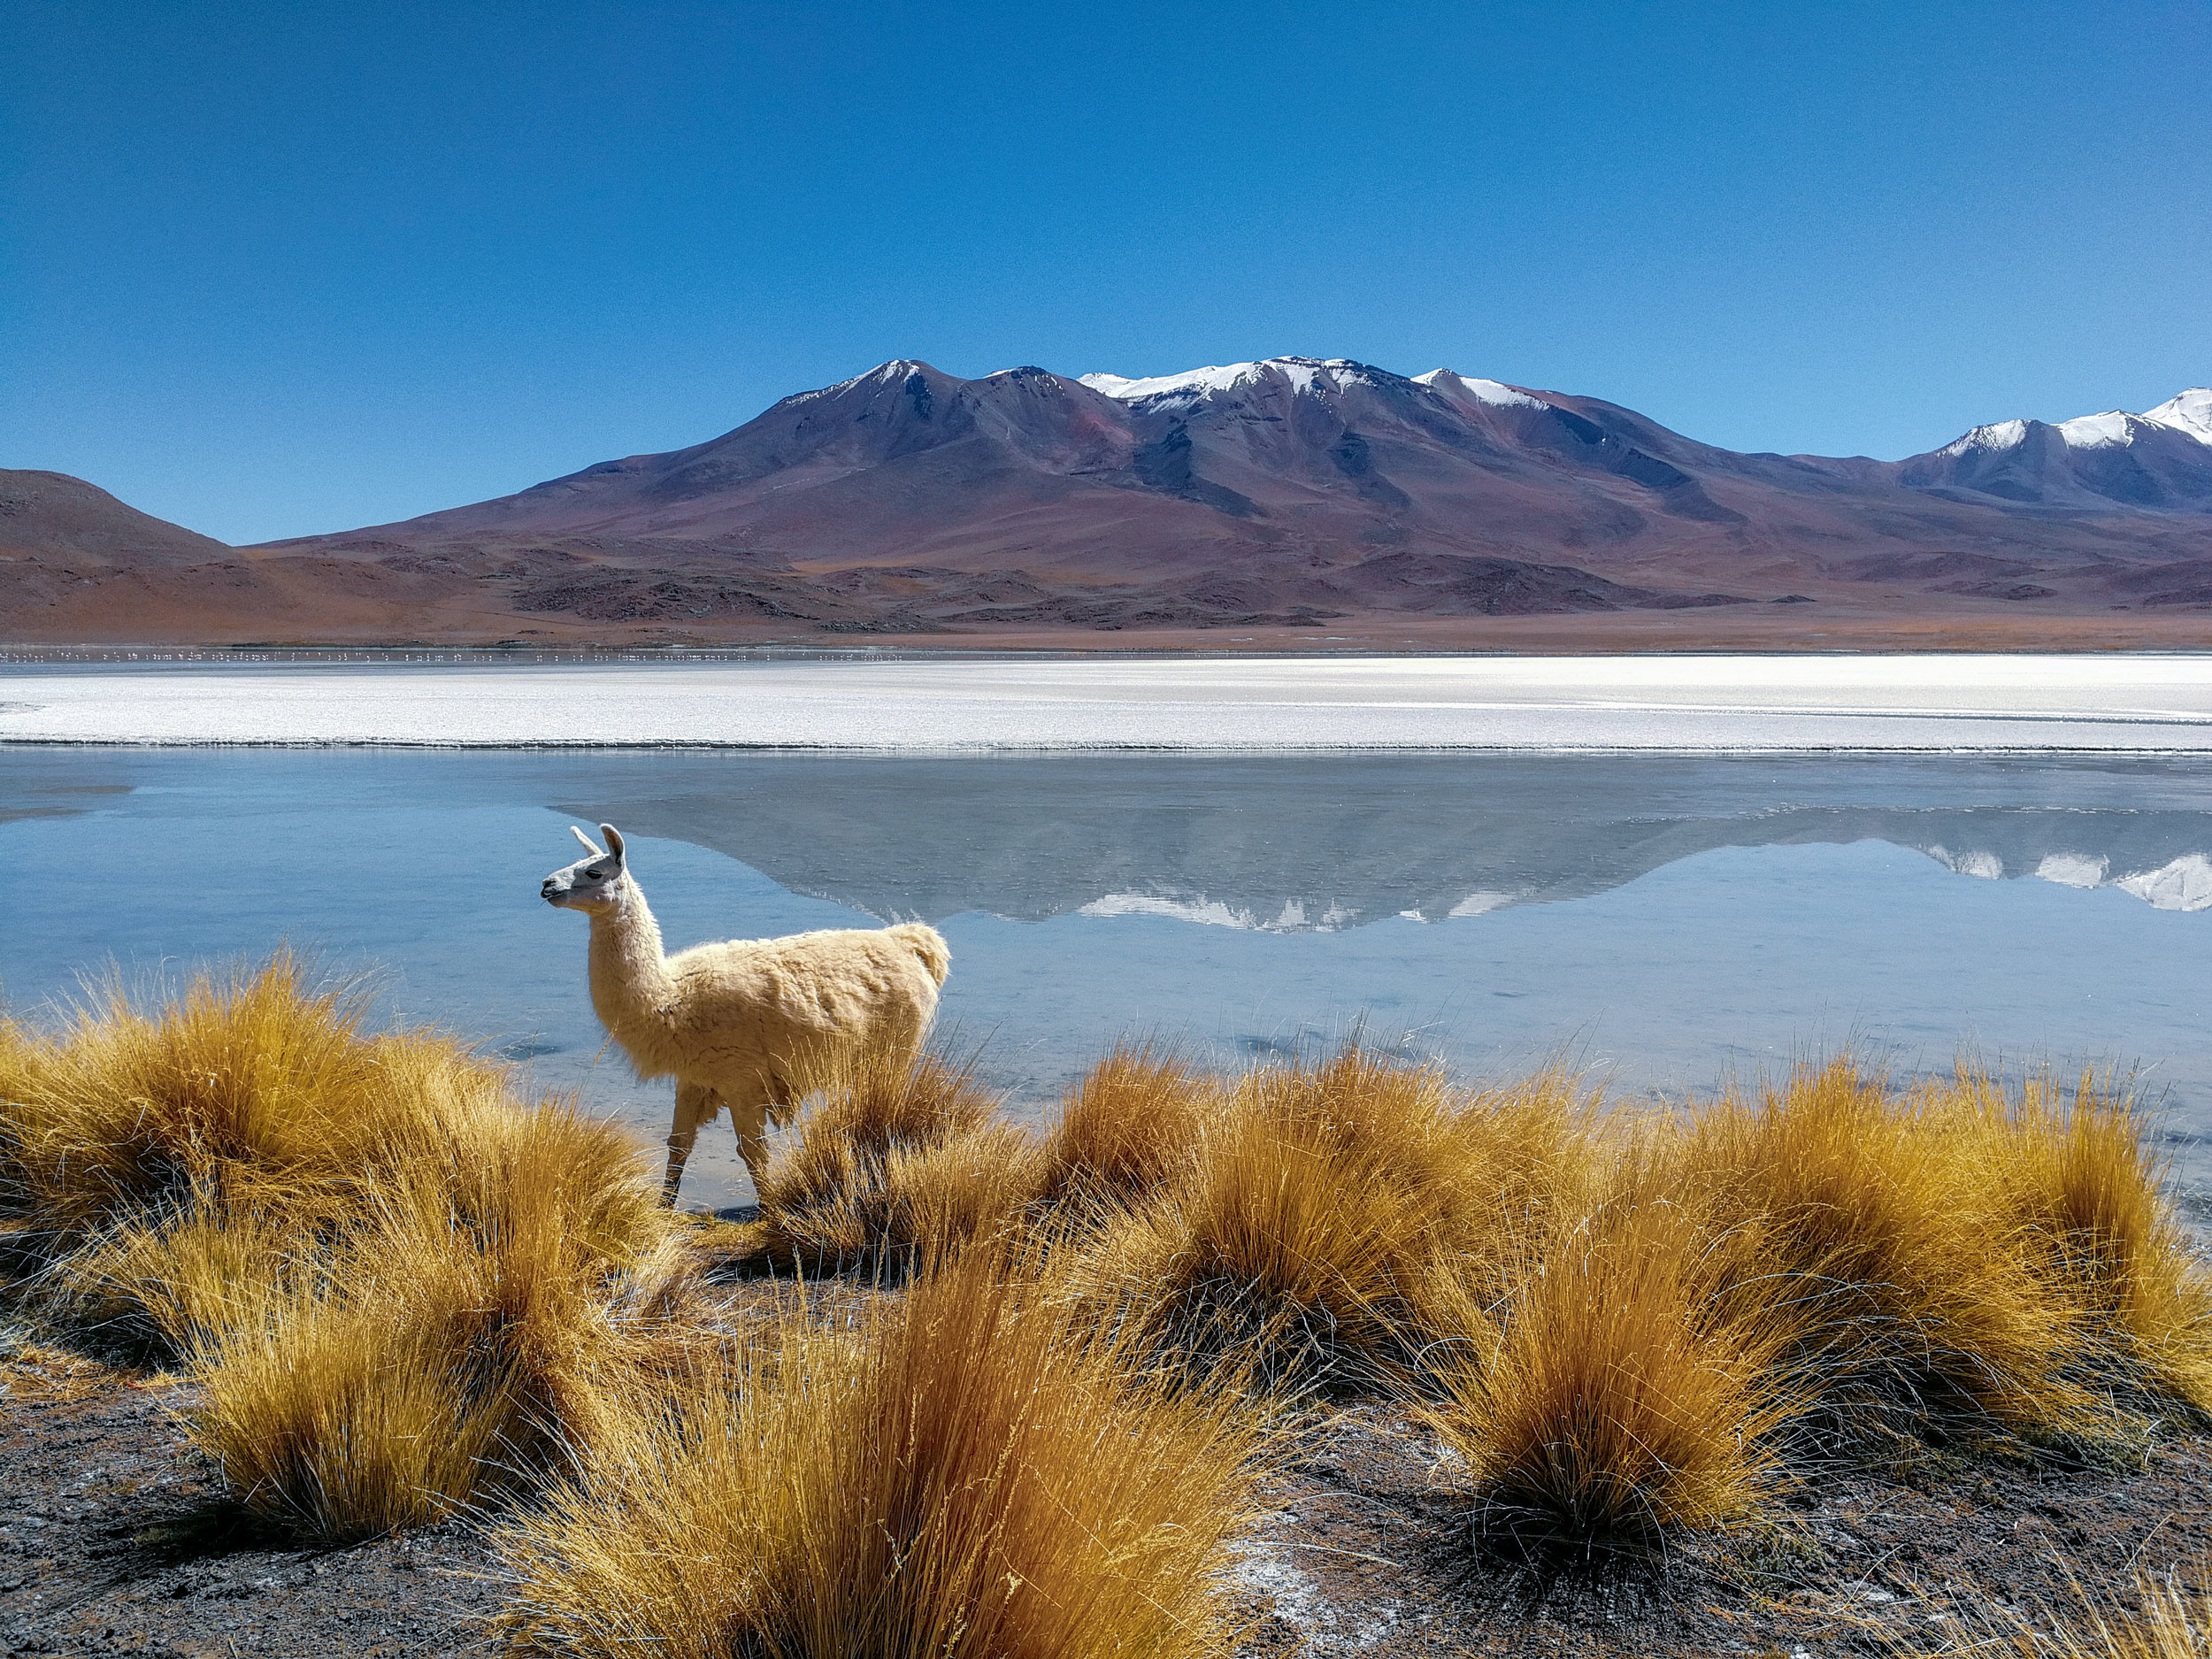 Ecotourism in Bolivia - practice responsible tourism on your trip. What is ecotourism? Find out more here.